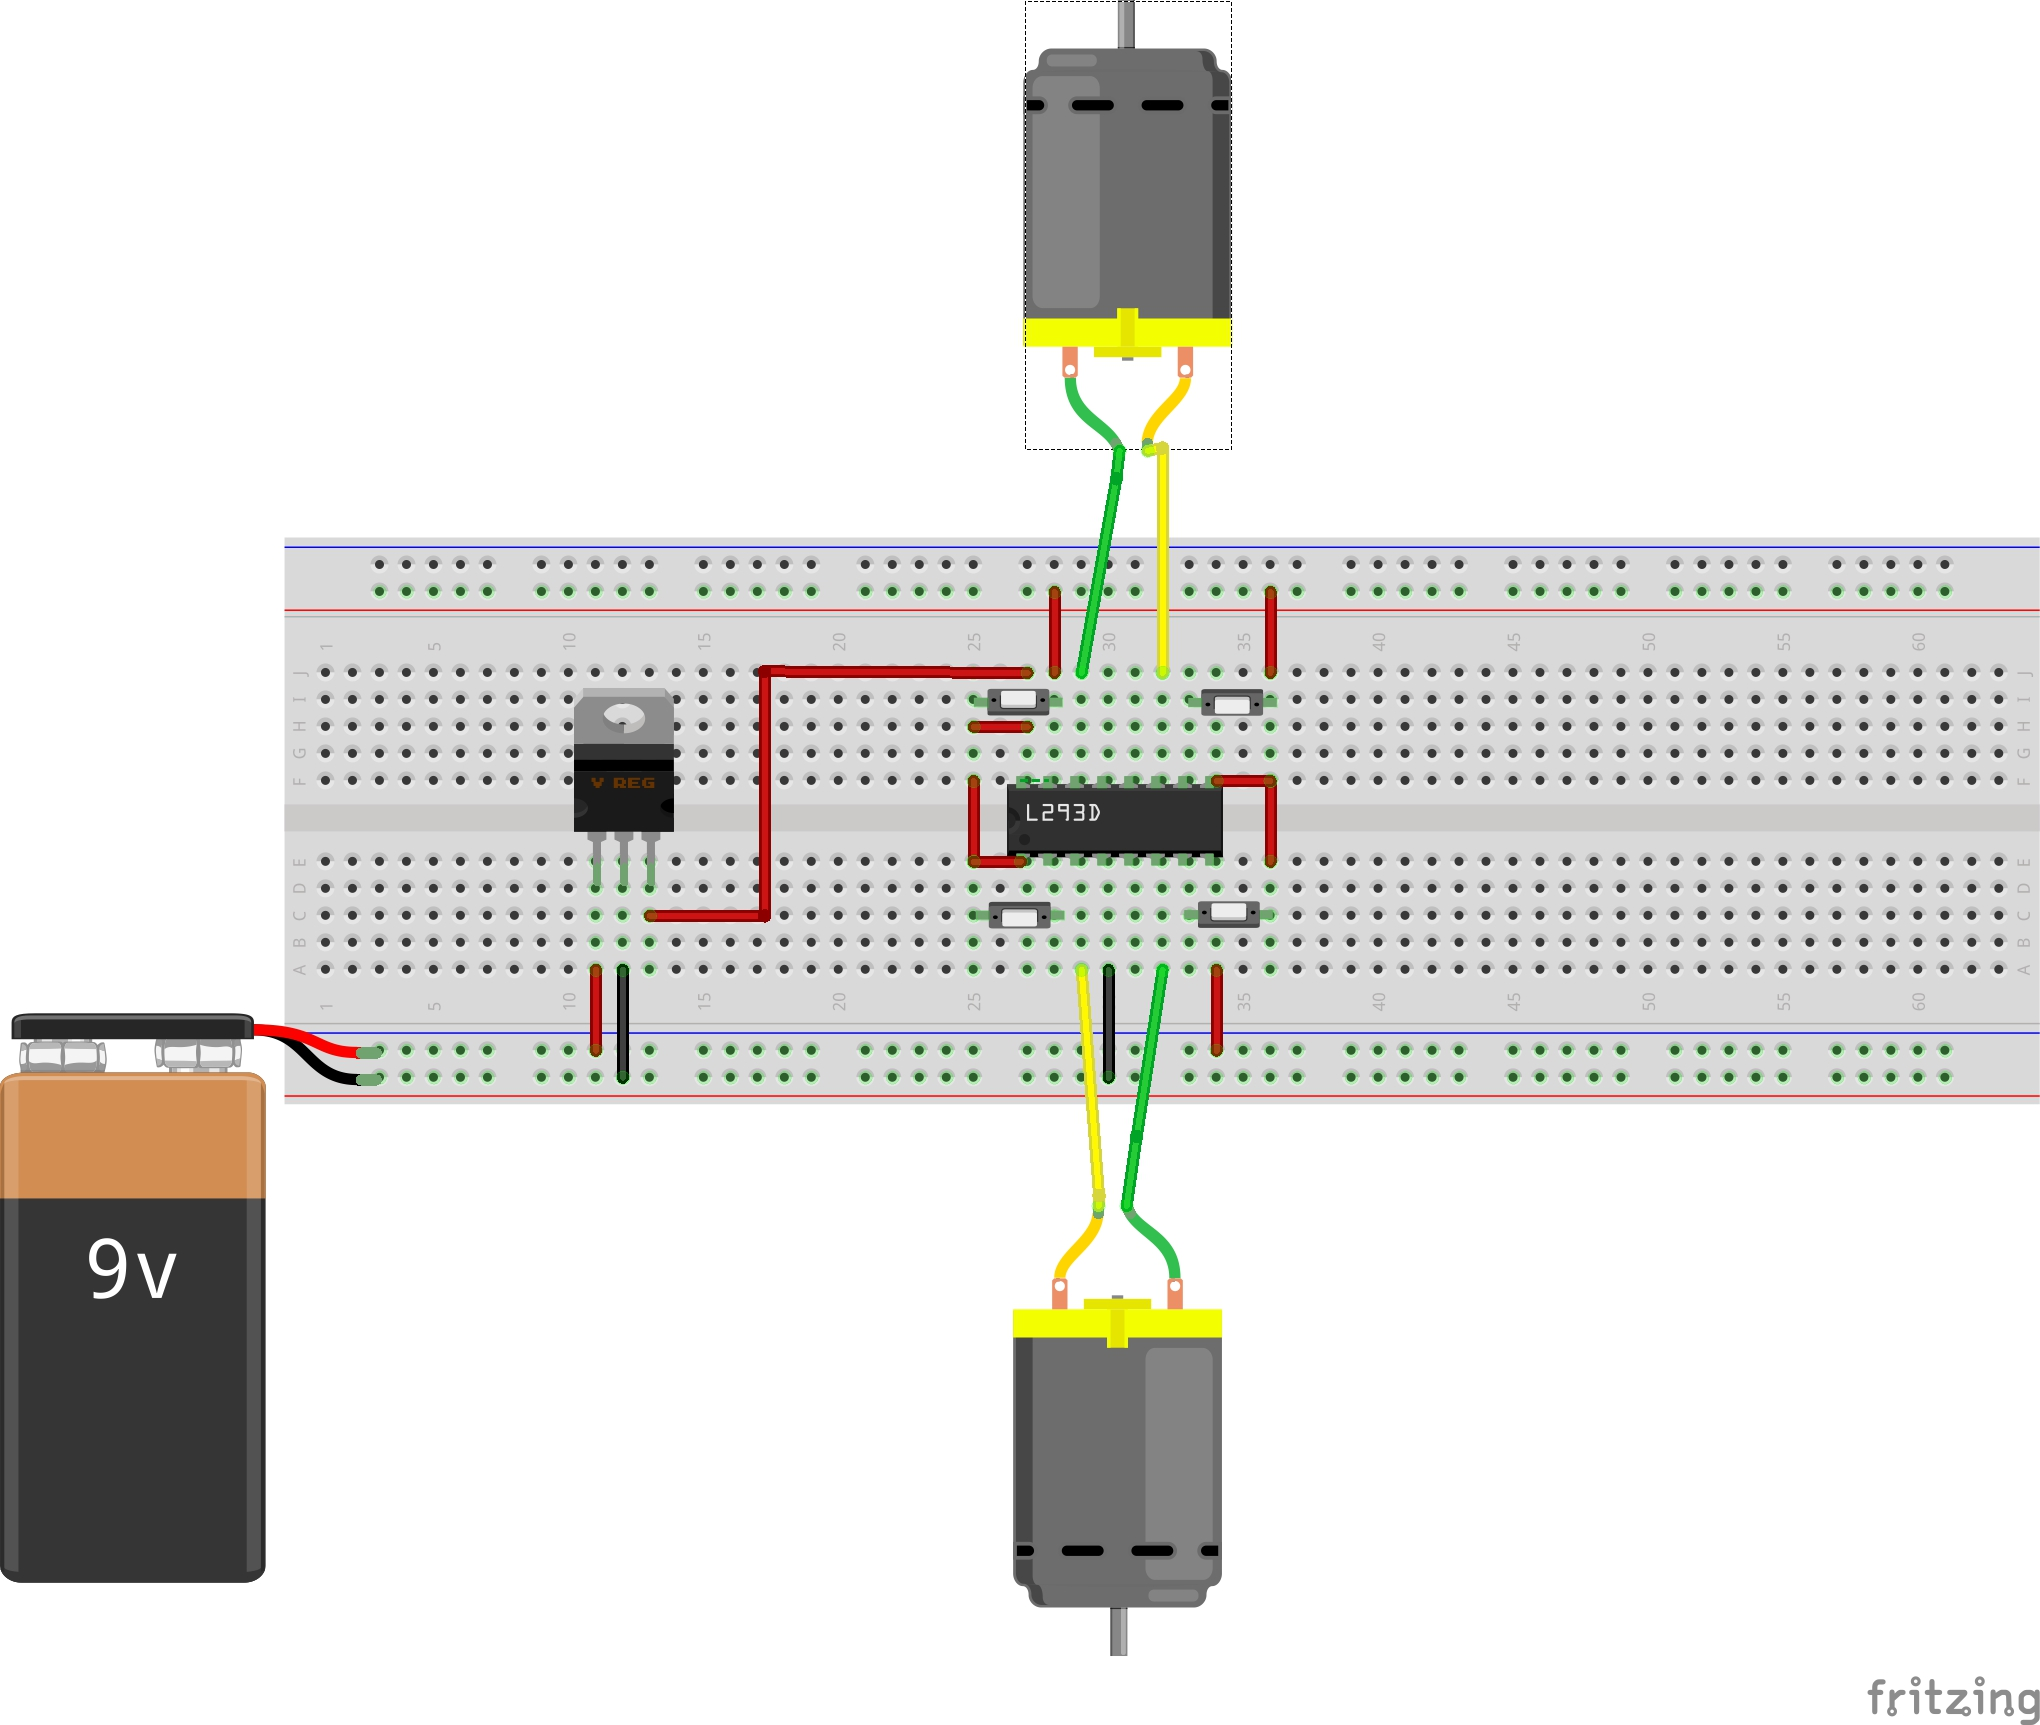 Schematic For Interfacing A Dc Motor Using L293d Is Shown Below